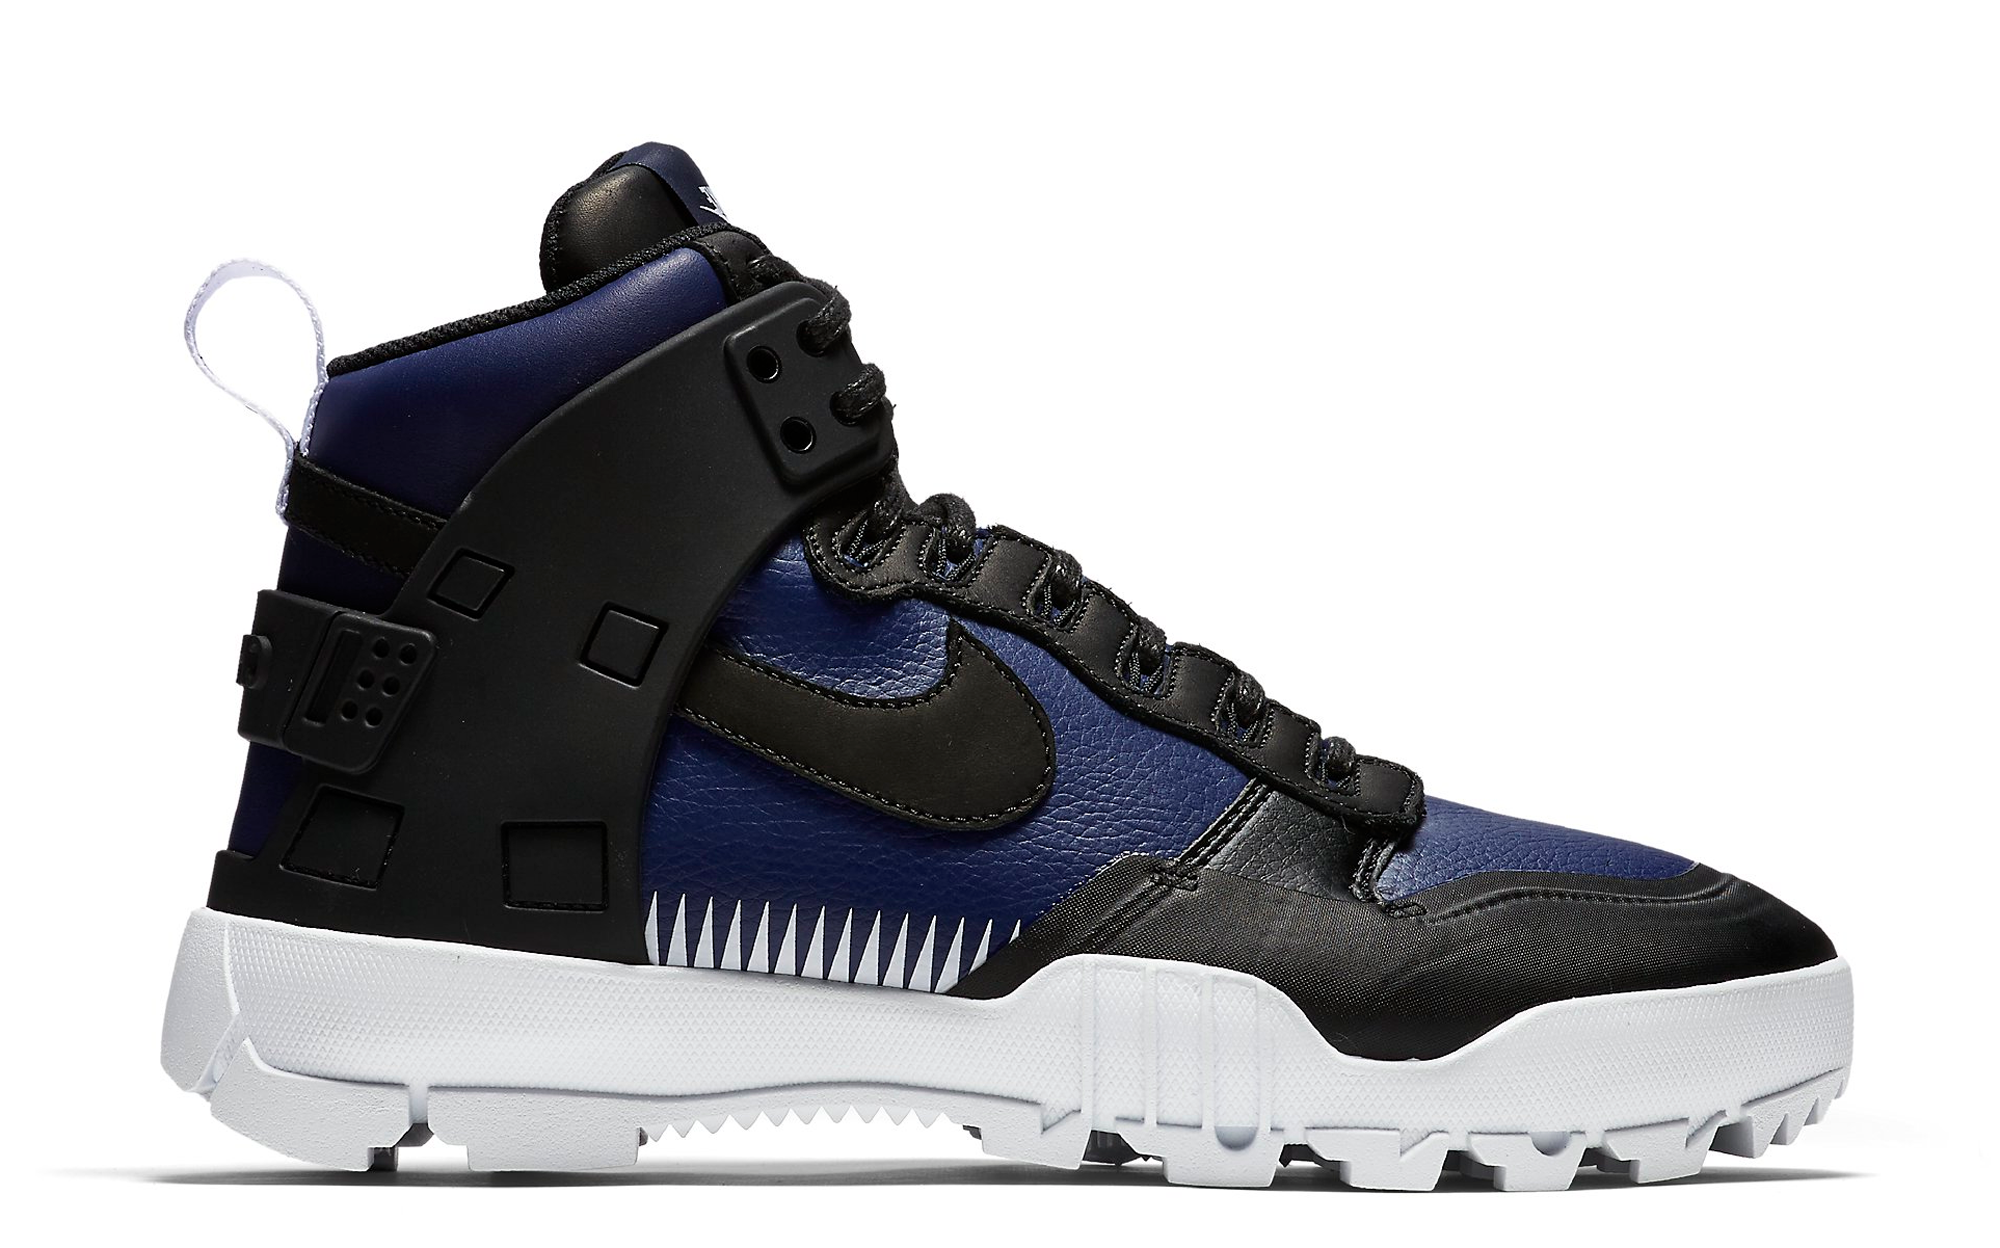 Nike SFB Jungle Dunk Undercover Colorway  Black Black-Loyal Blue Style   910092-001. Release Date  01.28.17 9a2496814